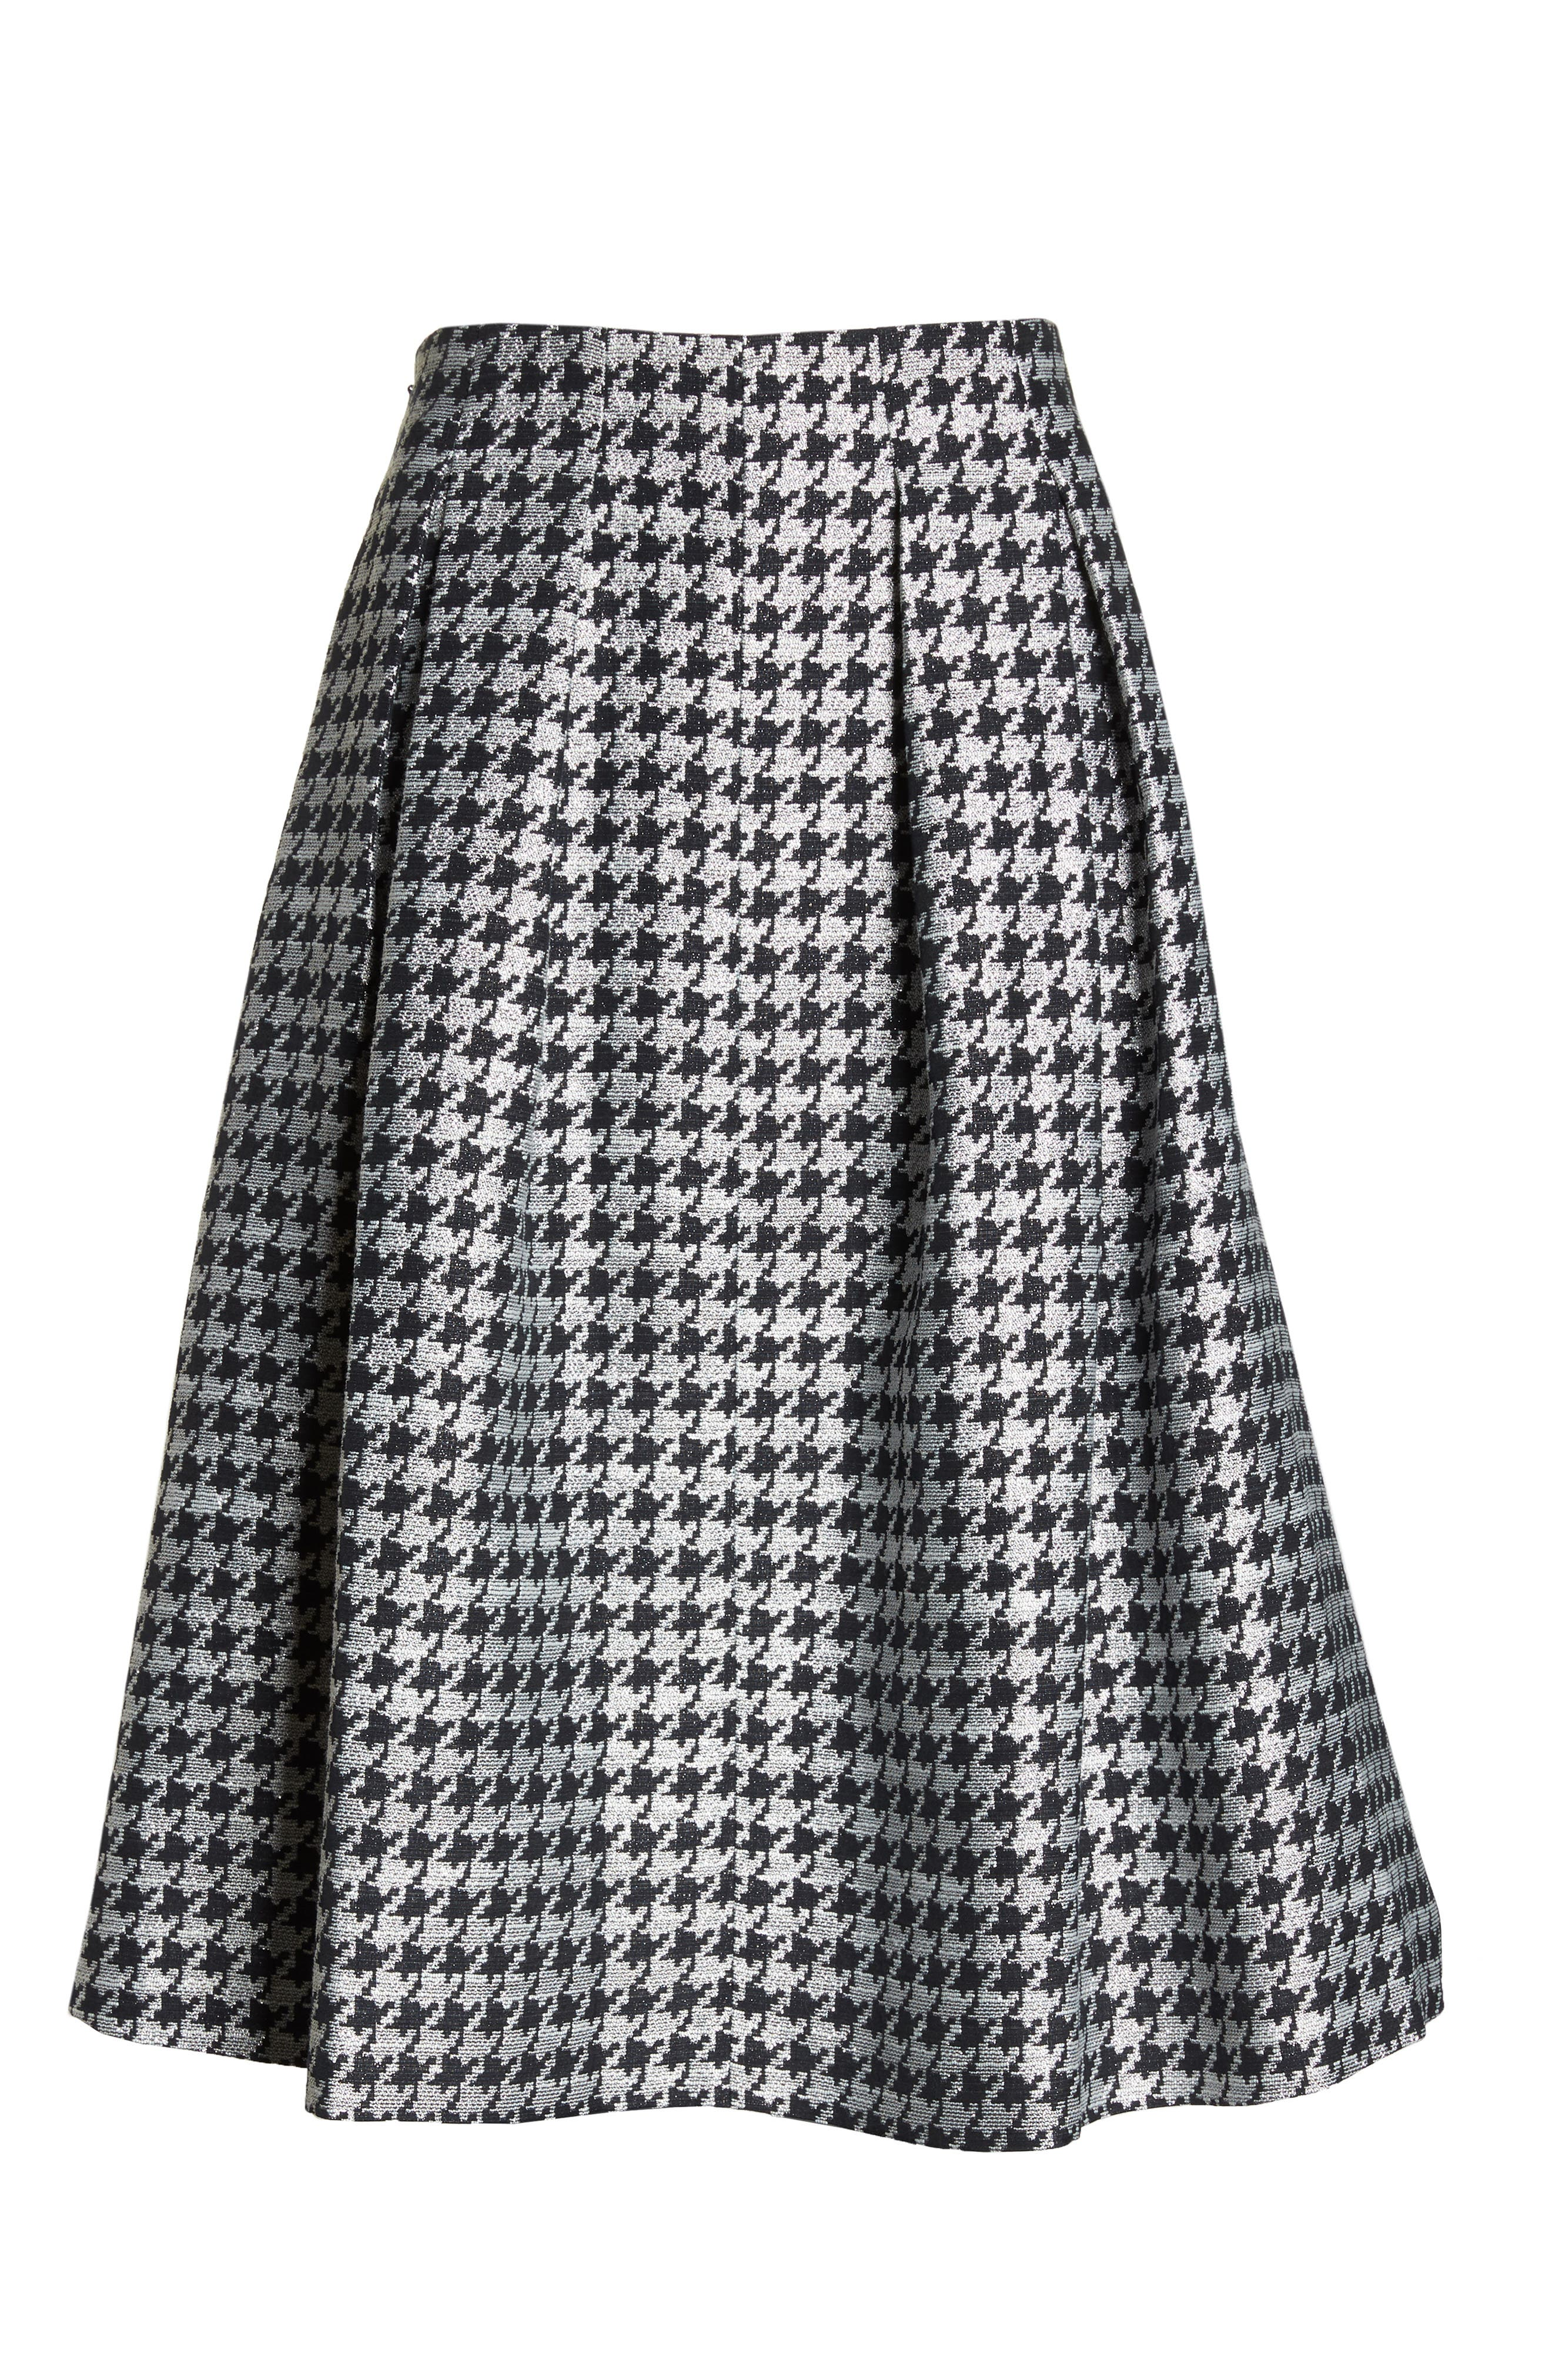 Houndstooth Pleated Skirt,                             Alternate thumbnail 7, color,                             001